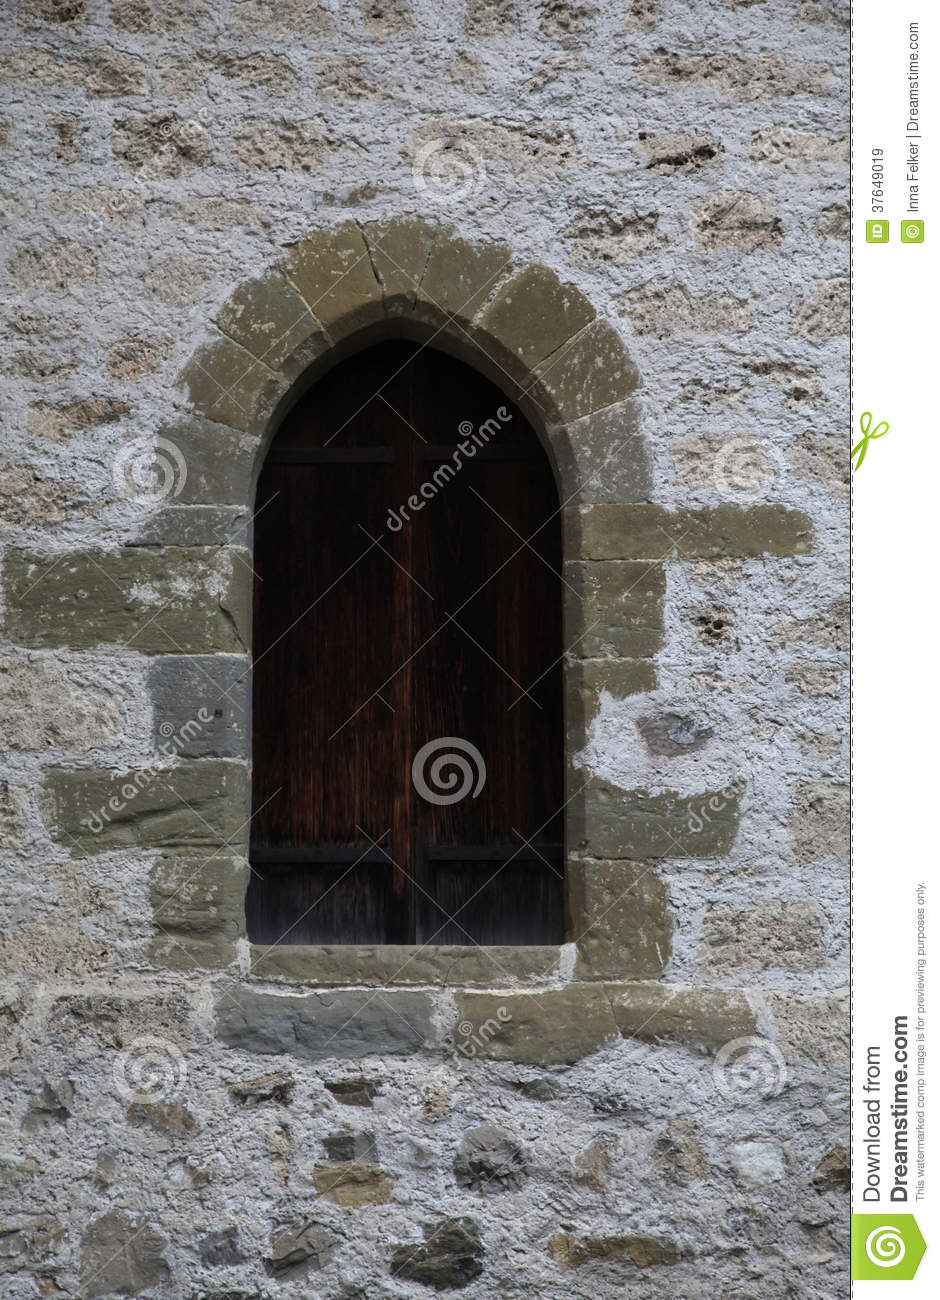 Arch Window Of Medieval Castle Stock Image  Image 37649019